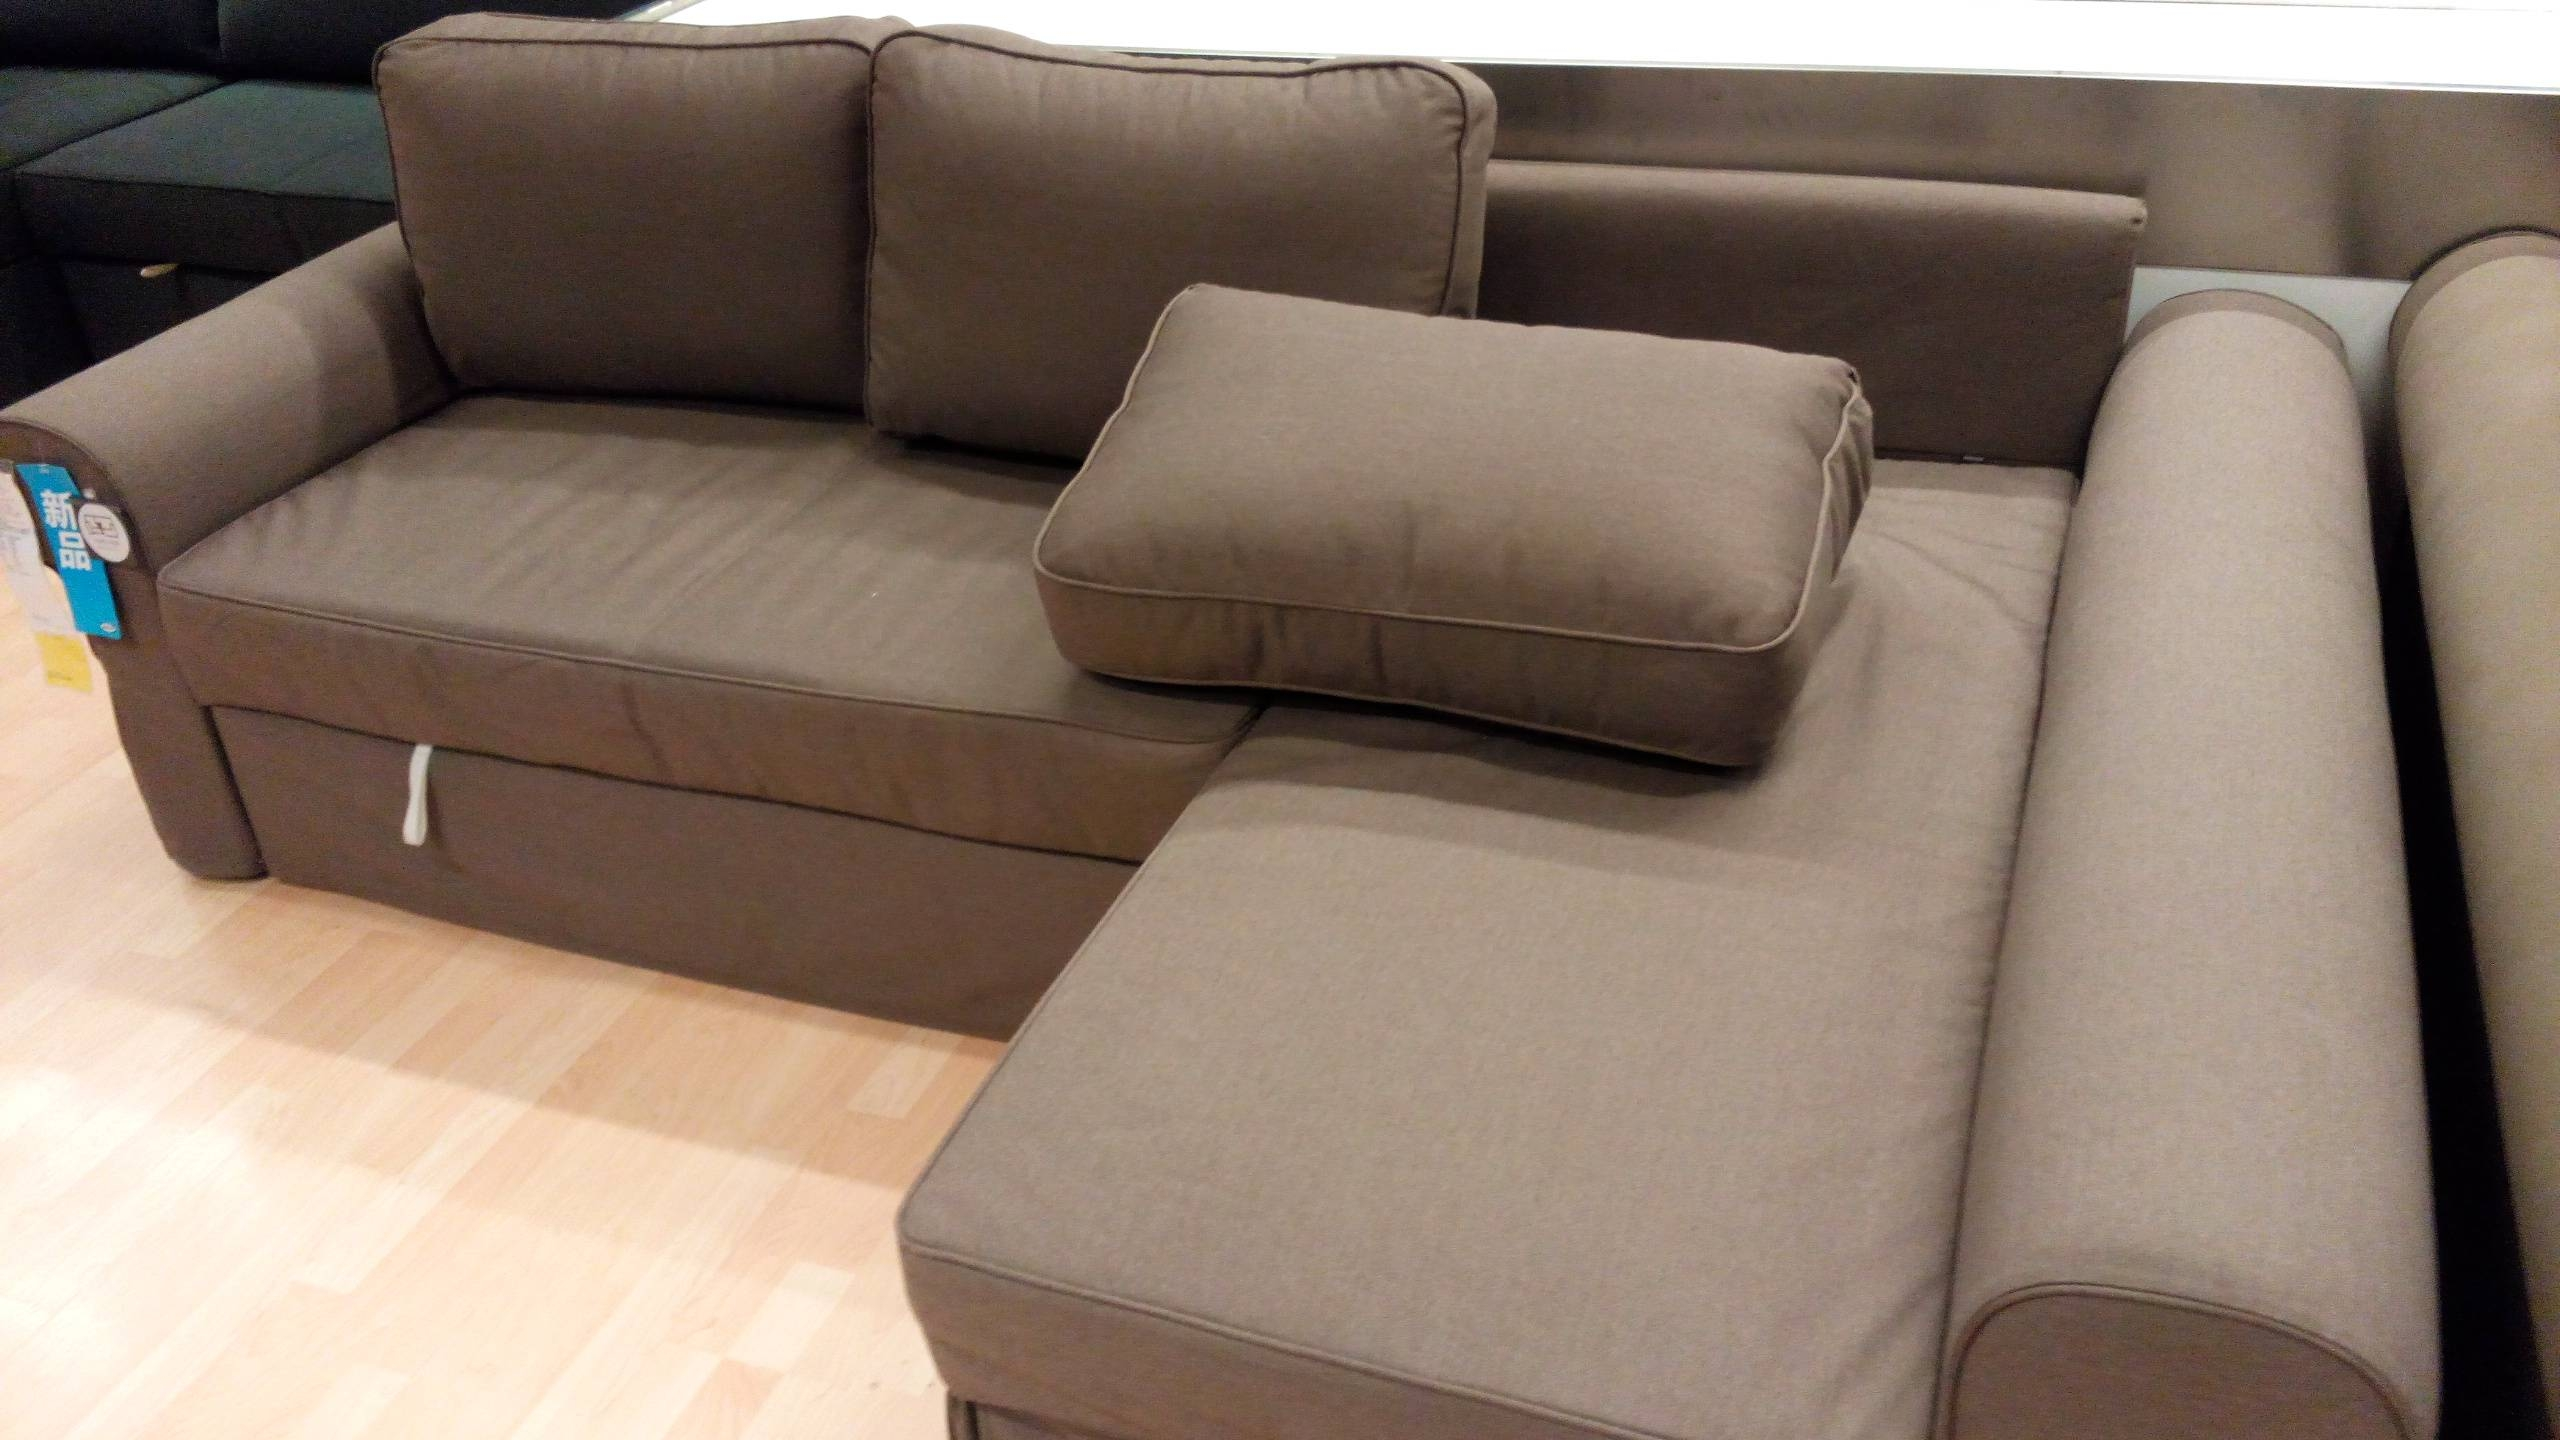 Ikea Vilasund And Backabro Review - Return Of The Sofa Bed Clones! inside Manstad Sofa Bed (Image 7 of 8)